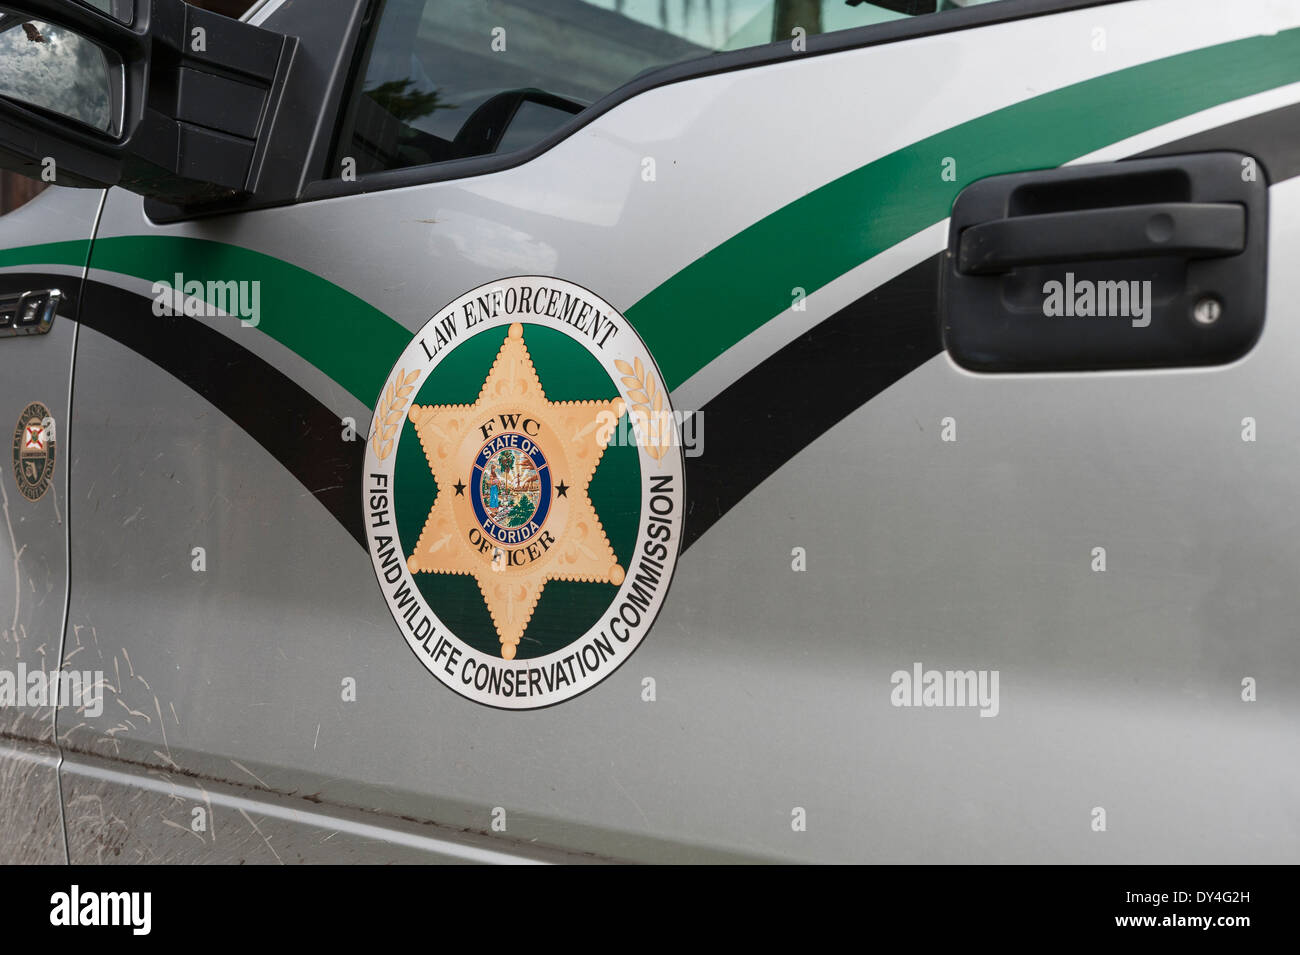 Florida Law Enforcement Fish and Wildlife Conservation Commission Vehicle Stock Photo